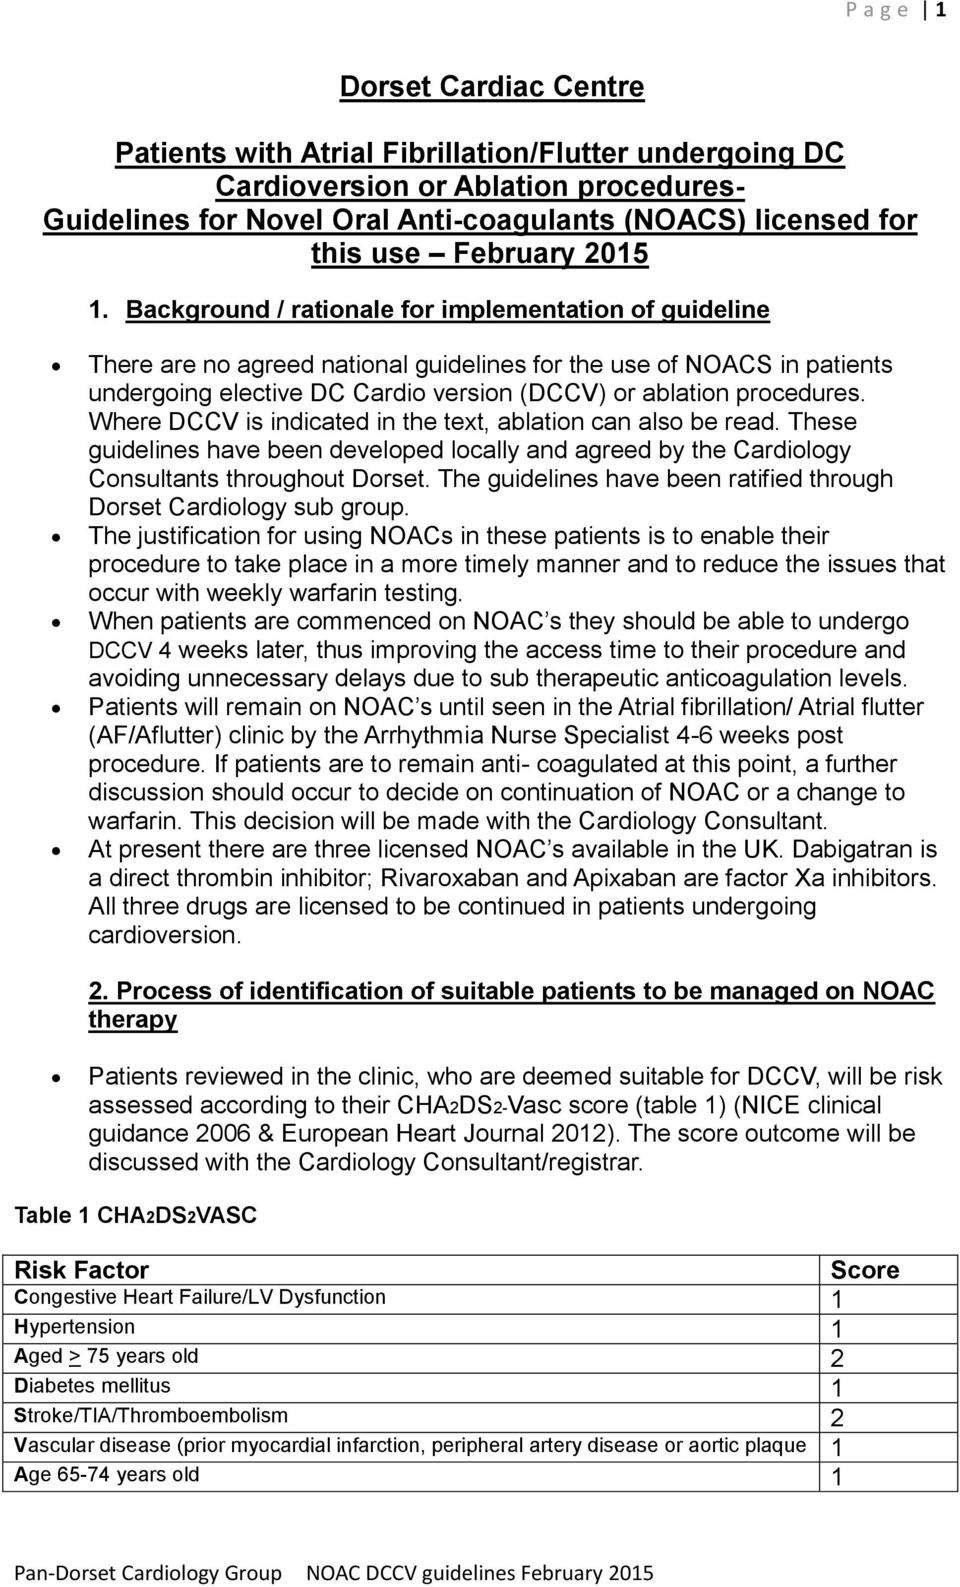 Background / rationale for implementation of guideline There are no agreed national guidelines for the use of NOACS in patients undergoing elective DC Cardio version (DCCV) or ablation procedures.